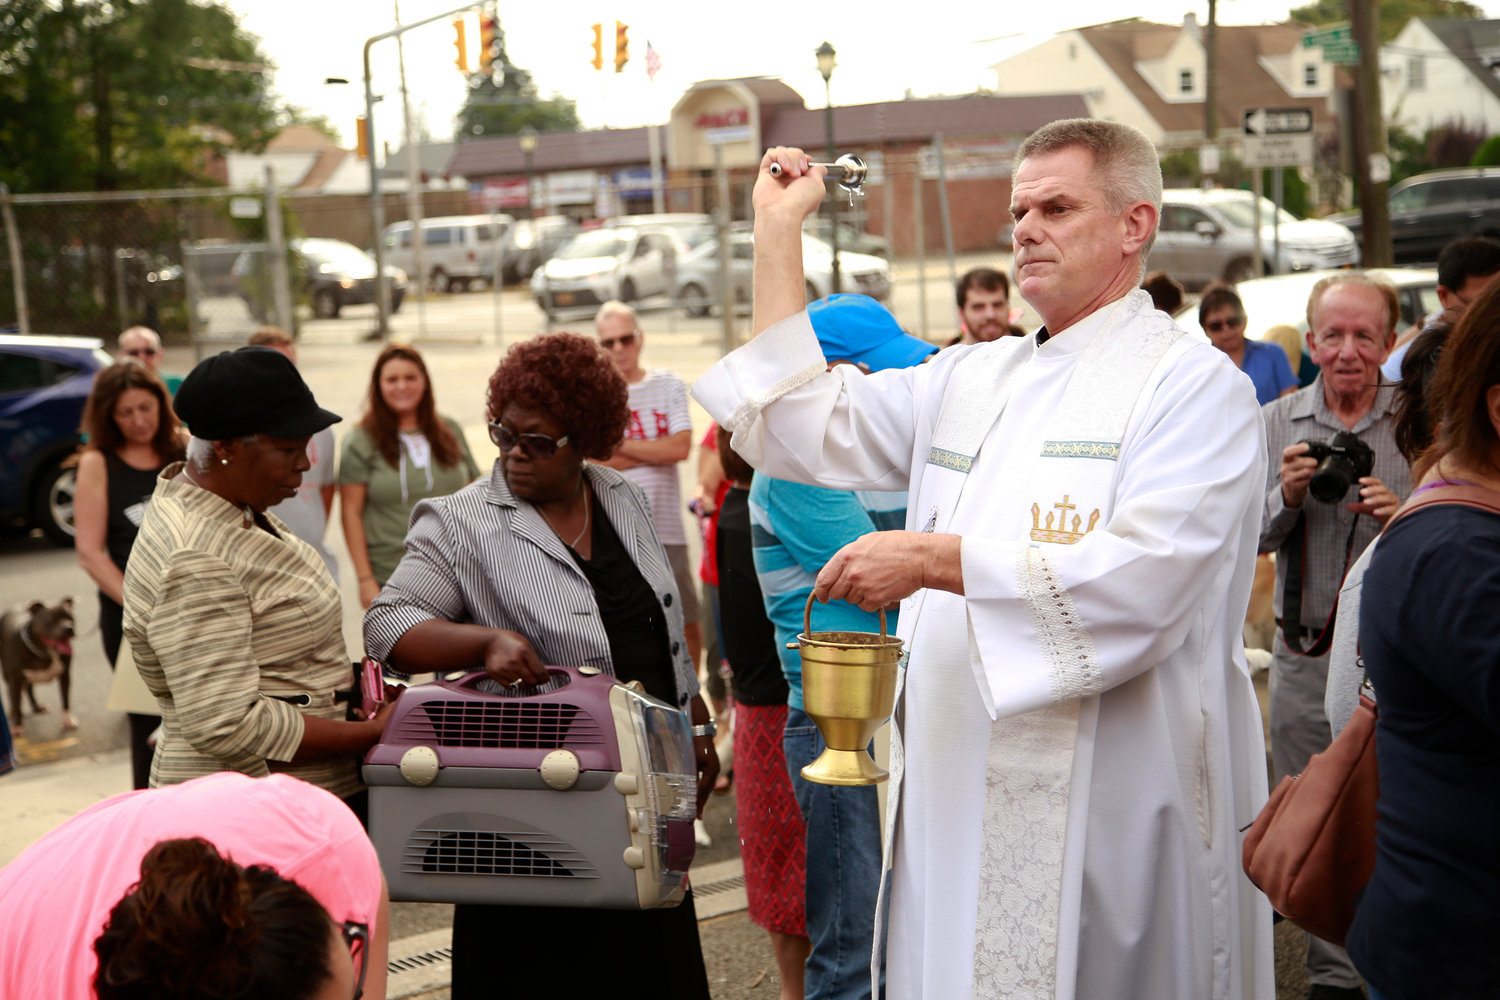 "The Rev. Peter Dugandzic, the pastor of Blessed Sacrament Church, blessed the pets with holy water. ""I get such a joy out of getting to see people with their pets,"" he said."